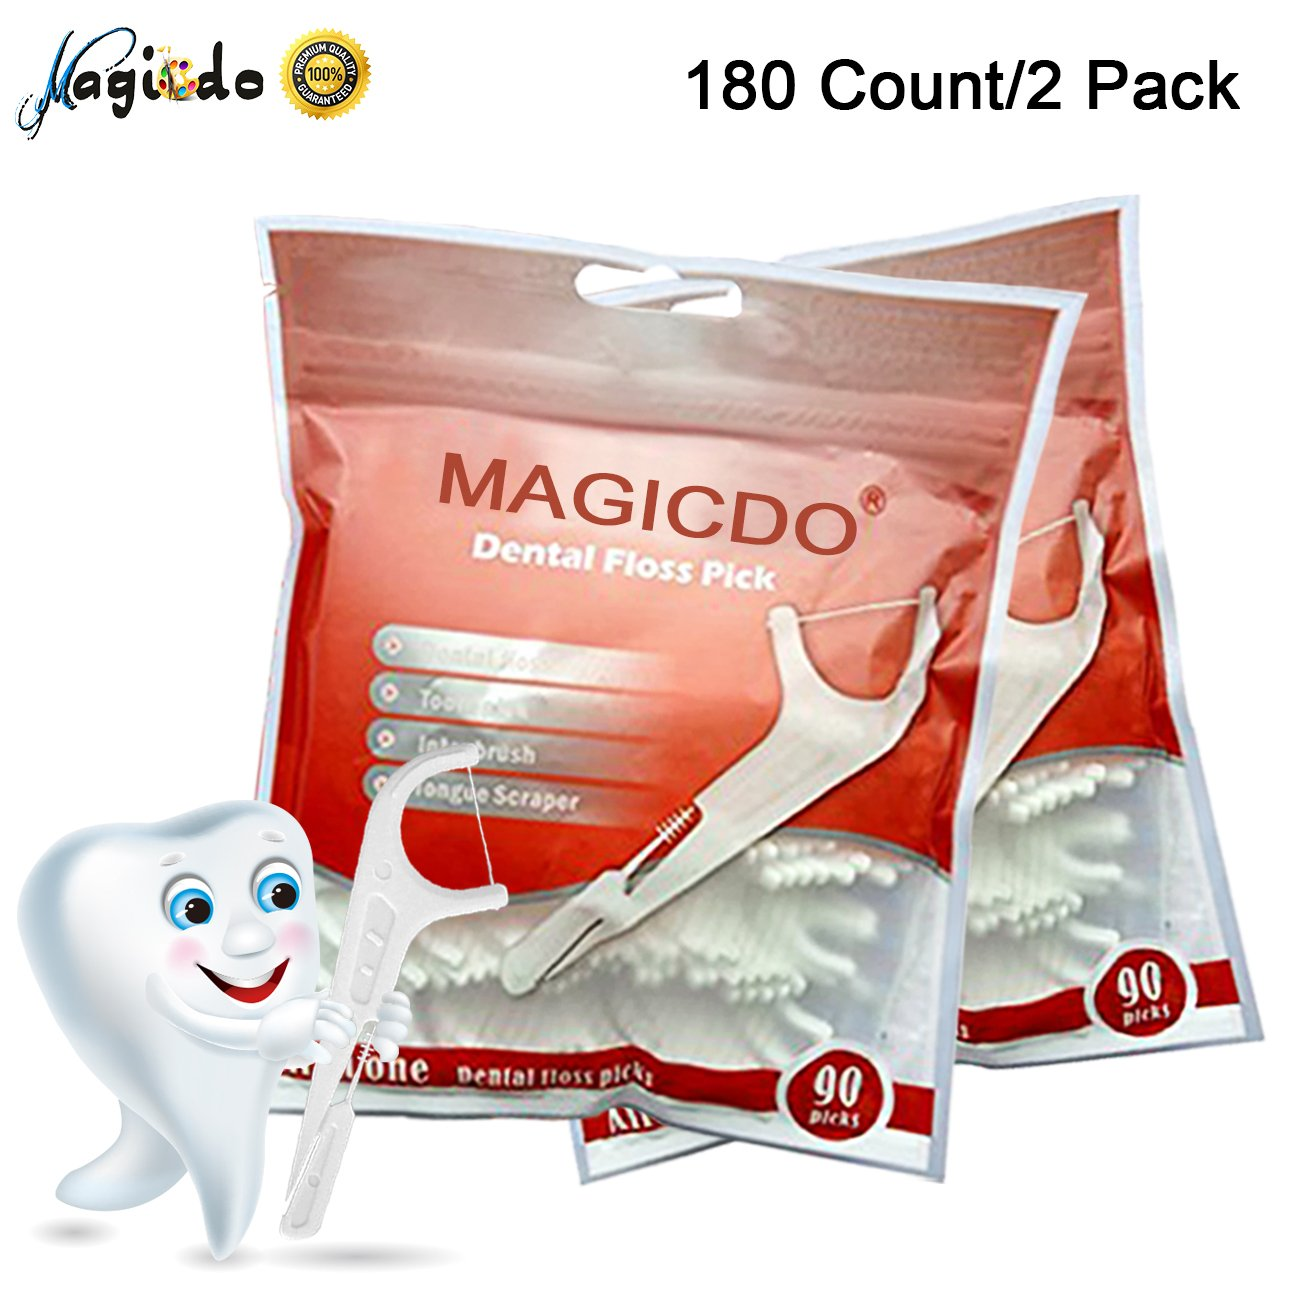 4 in 1 Dental Floss Pick with Flosser, Tooth Pick, Inter Brush & Tongue Scraper by Magido, FDA Approved, 180 Count (2 Pack) Magic Decoration